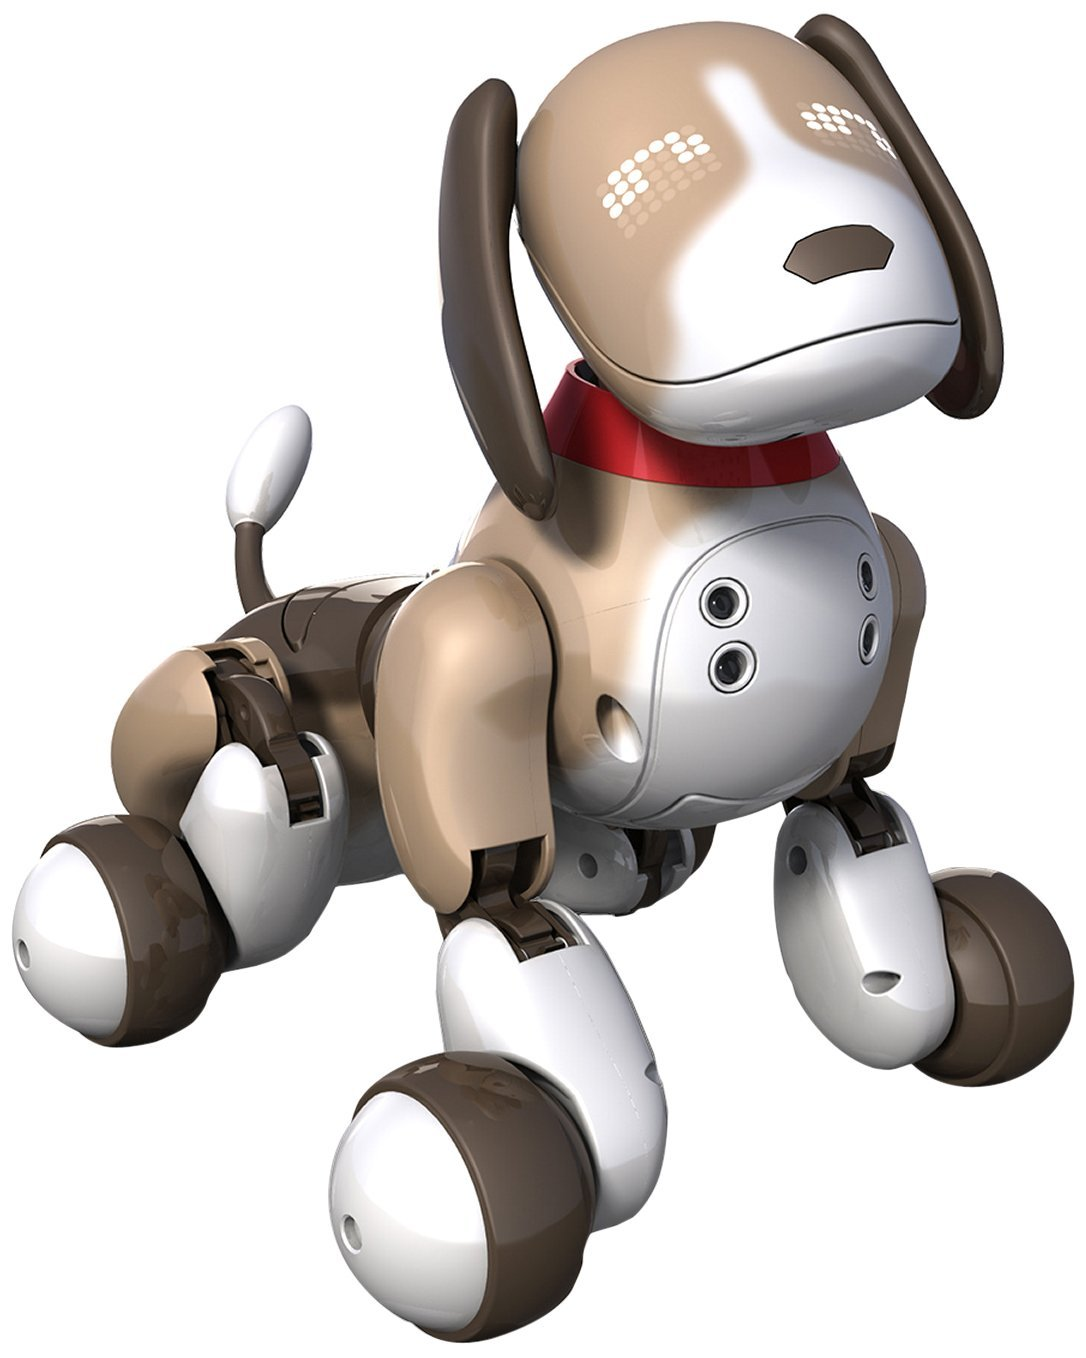 Zoomer Dog & Zuppy Robot Dogs Review - *A Must Read Before ...